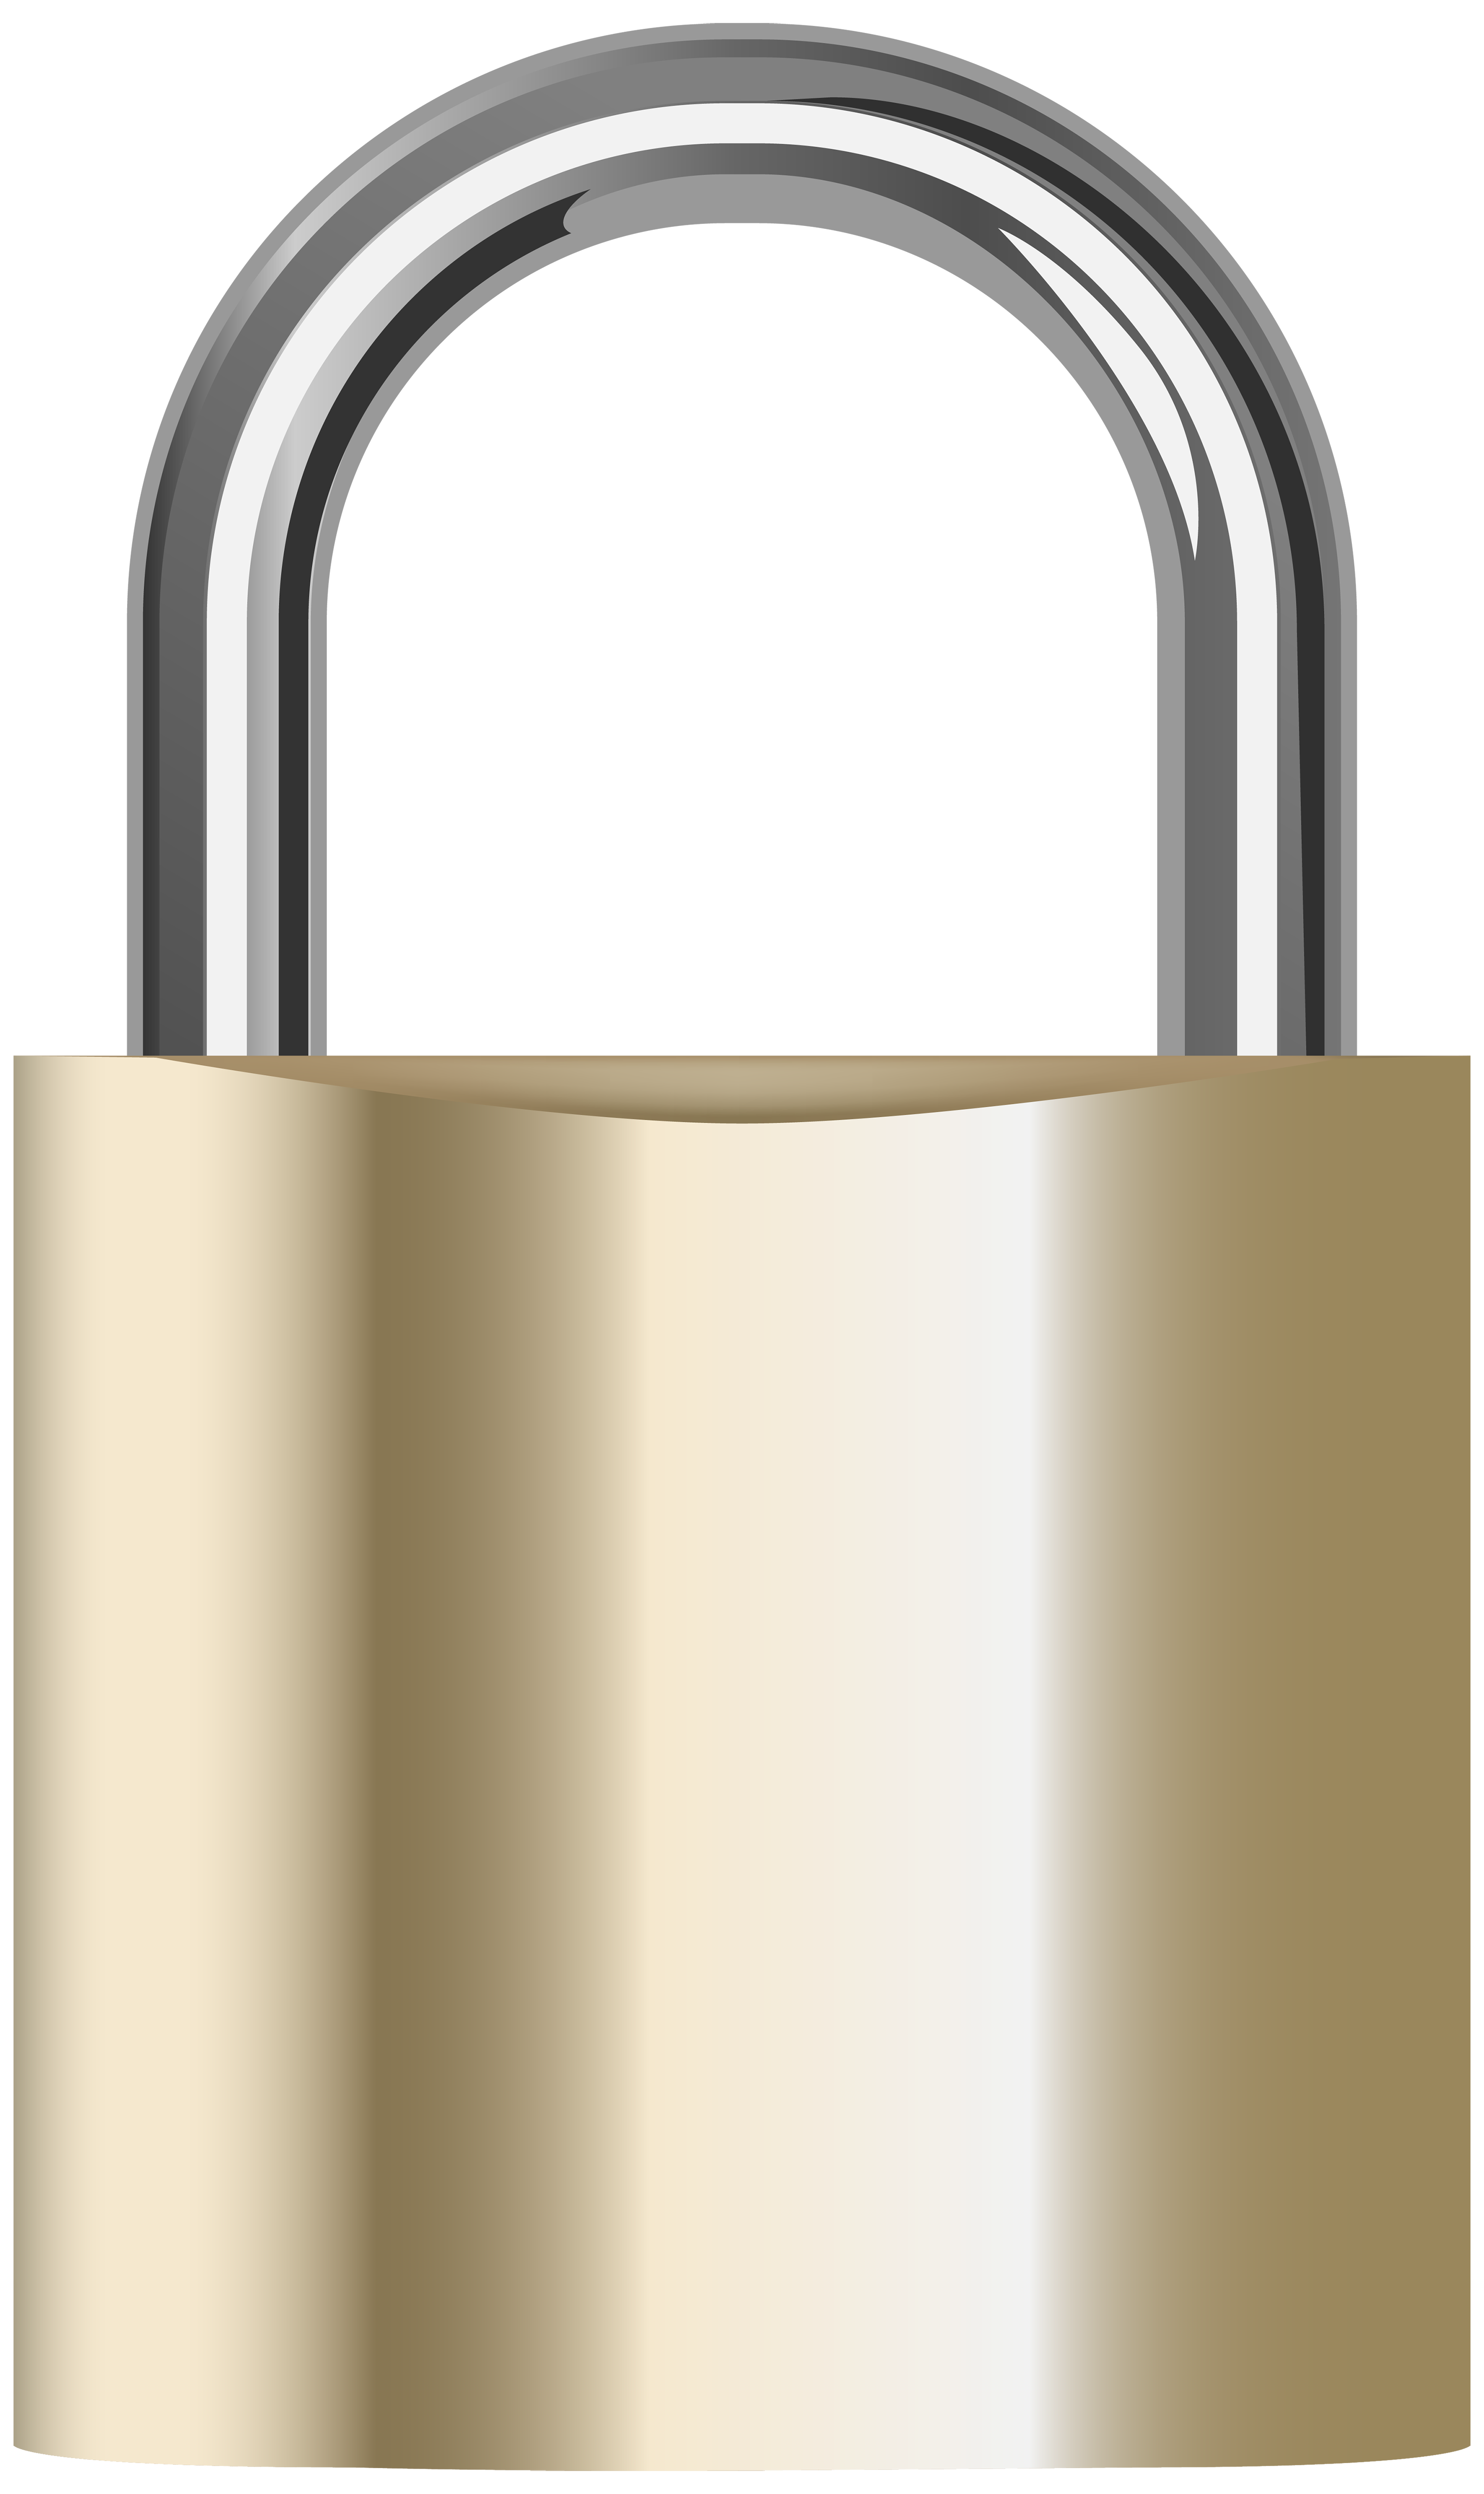 svg royalty free library Png clip art best. Lock clipart.